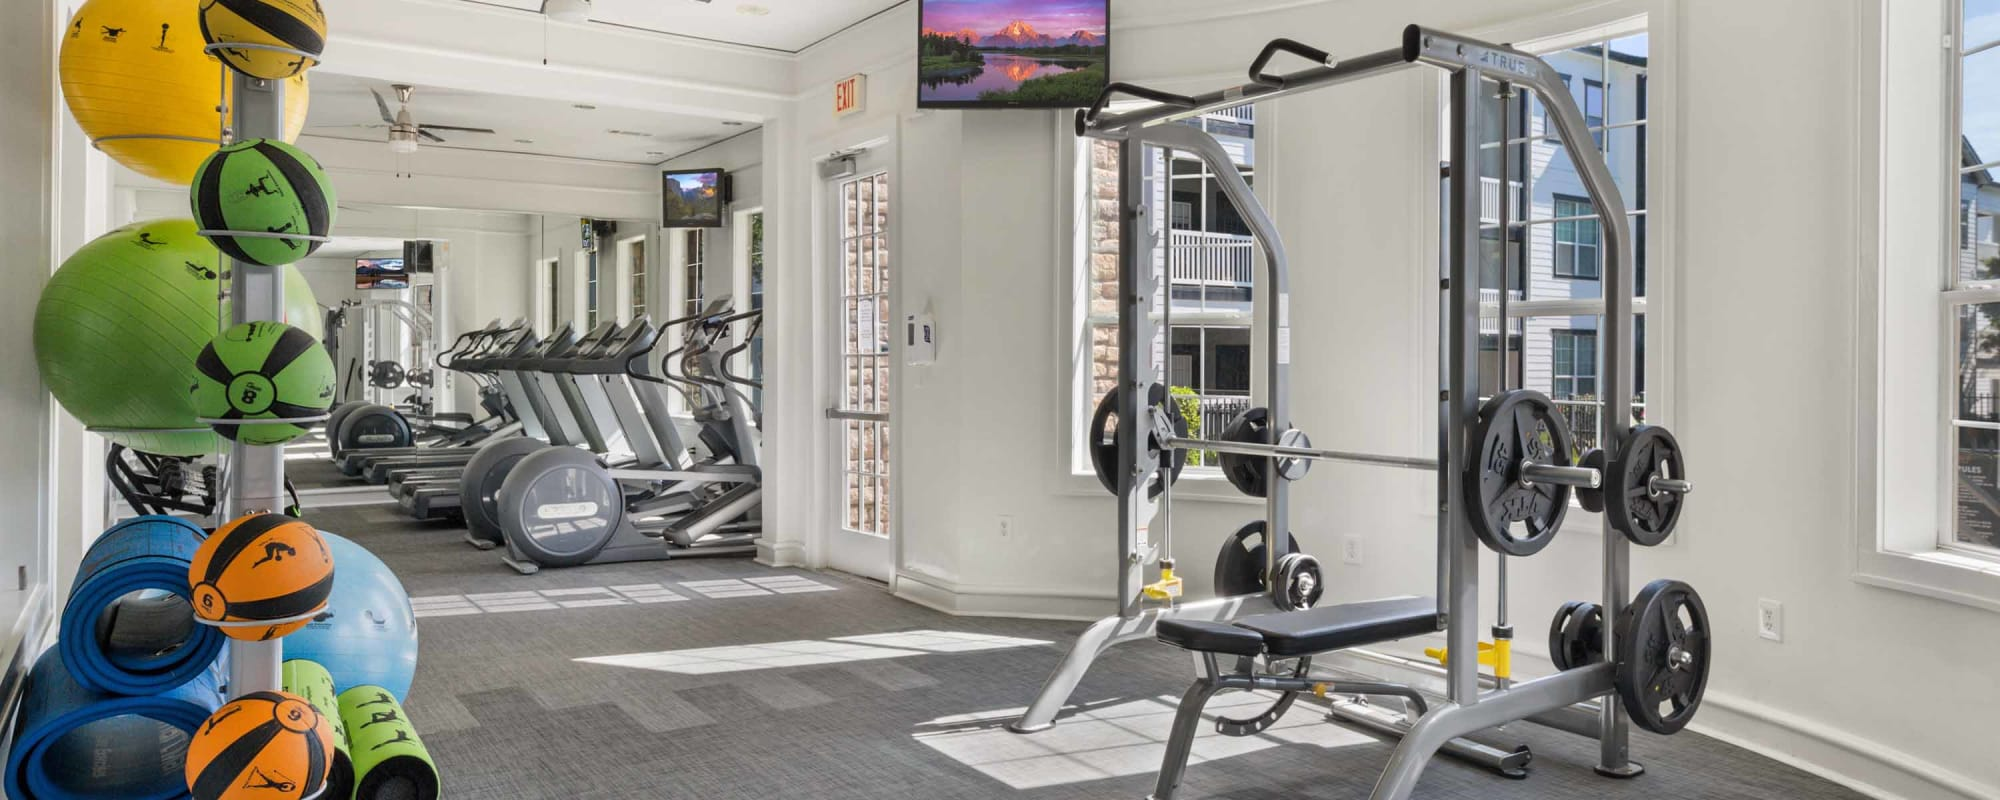 Enjoy Apartments with a Modern Fitness Center at Archer Stone Canyon